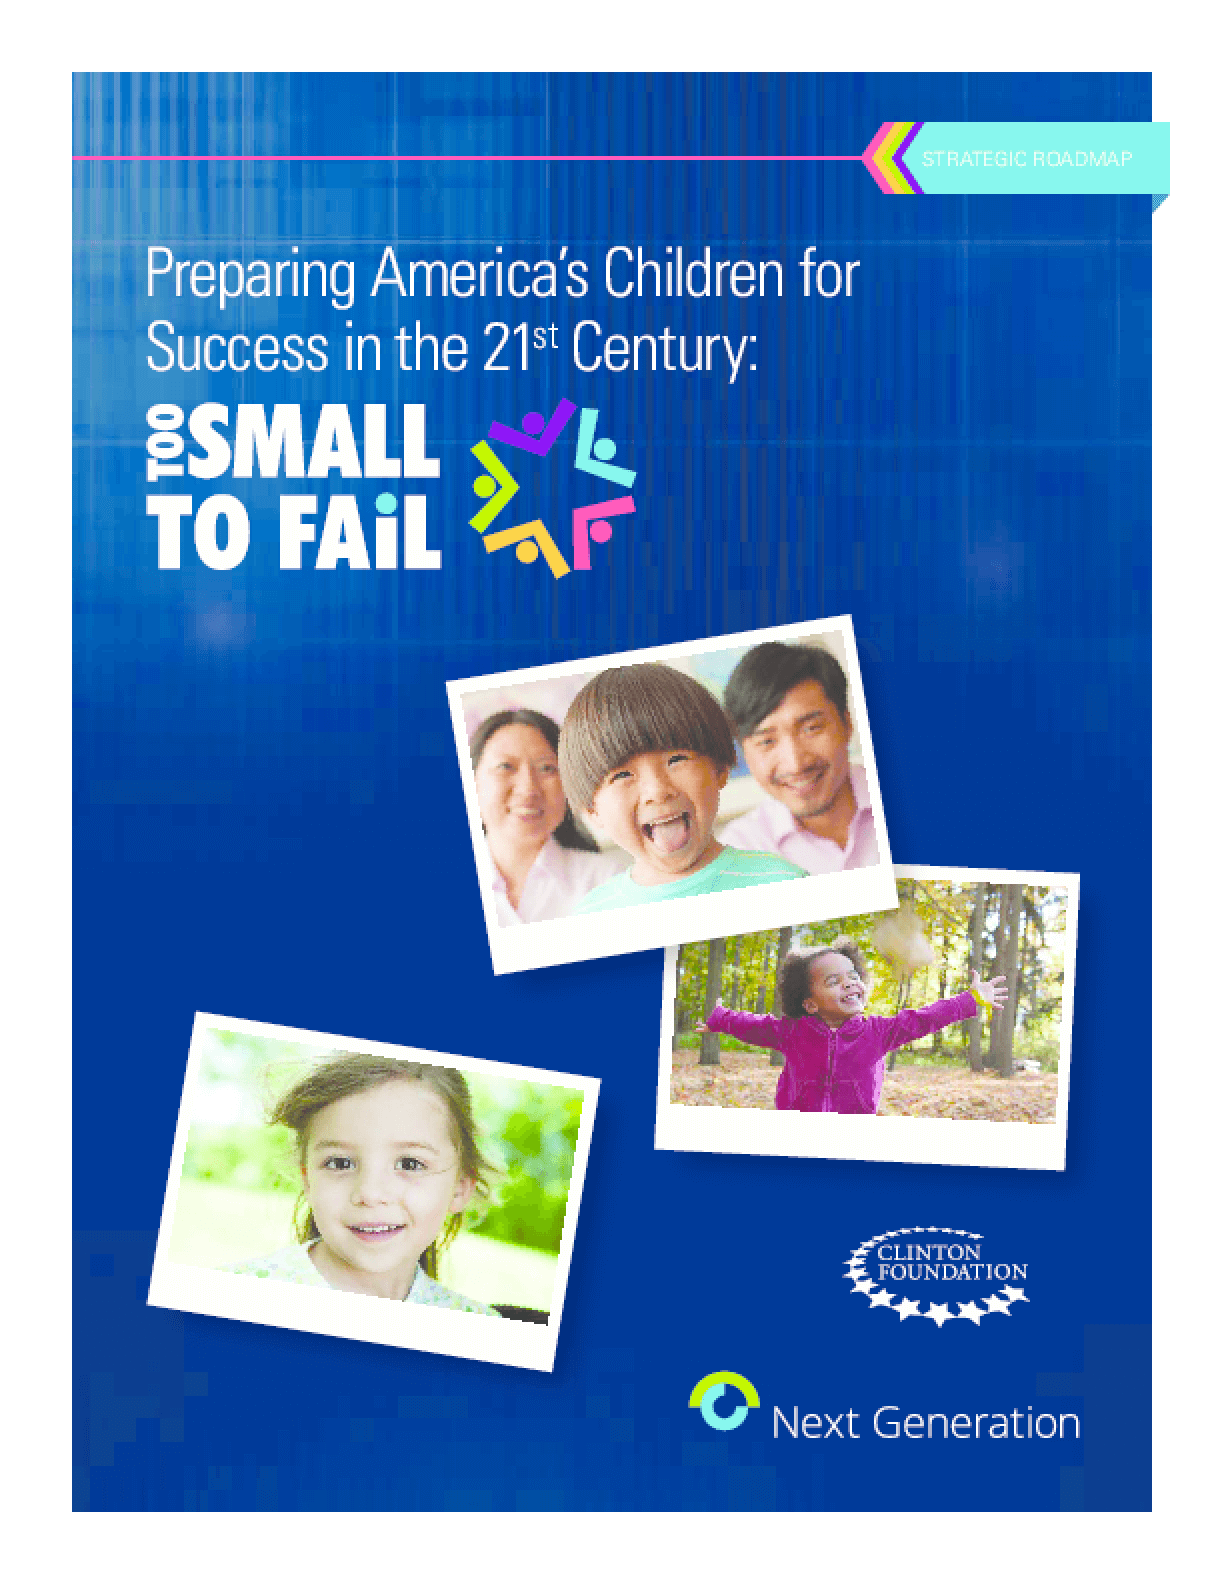 Preparing America's Children for Success in the 21st Century: Too Small to Fail